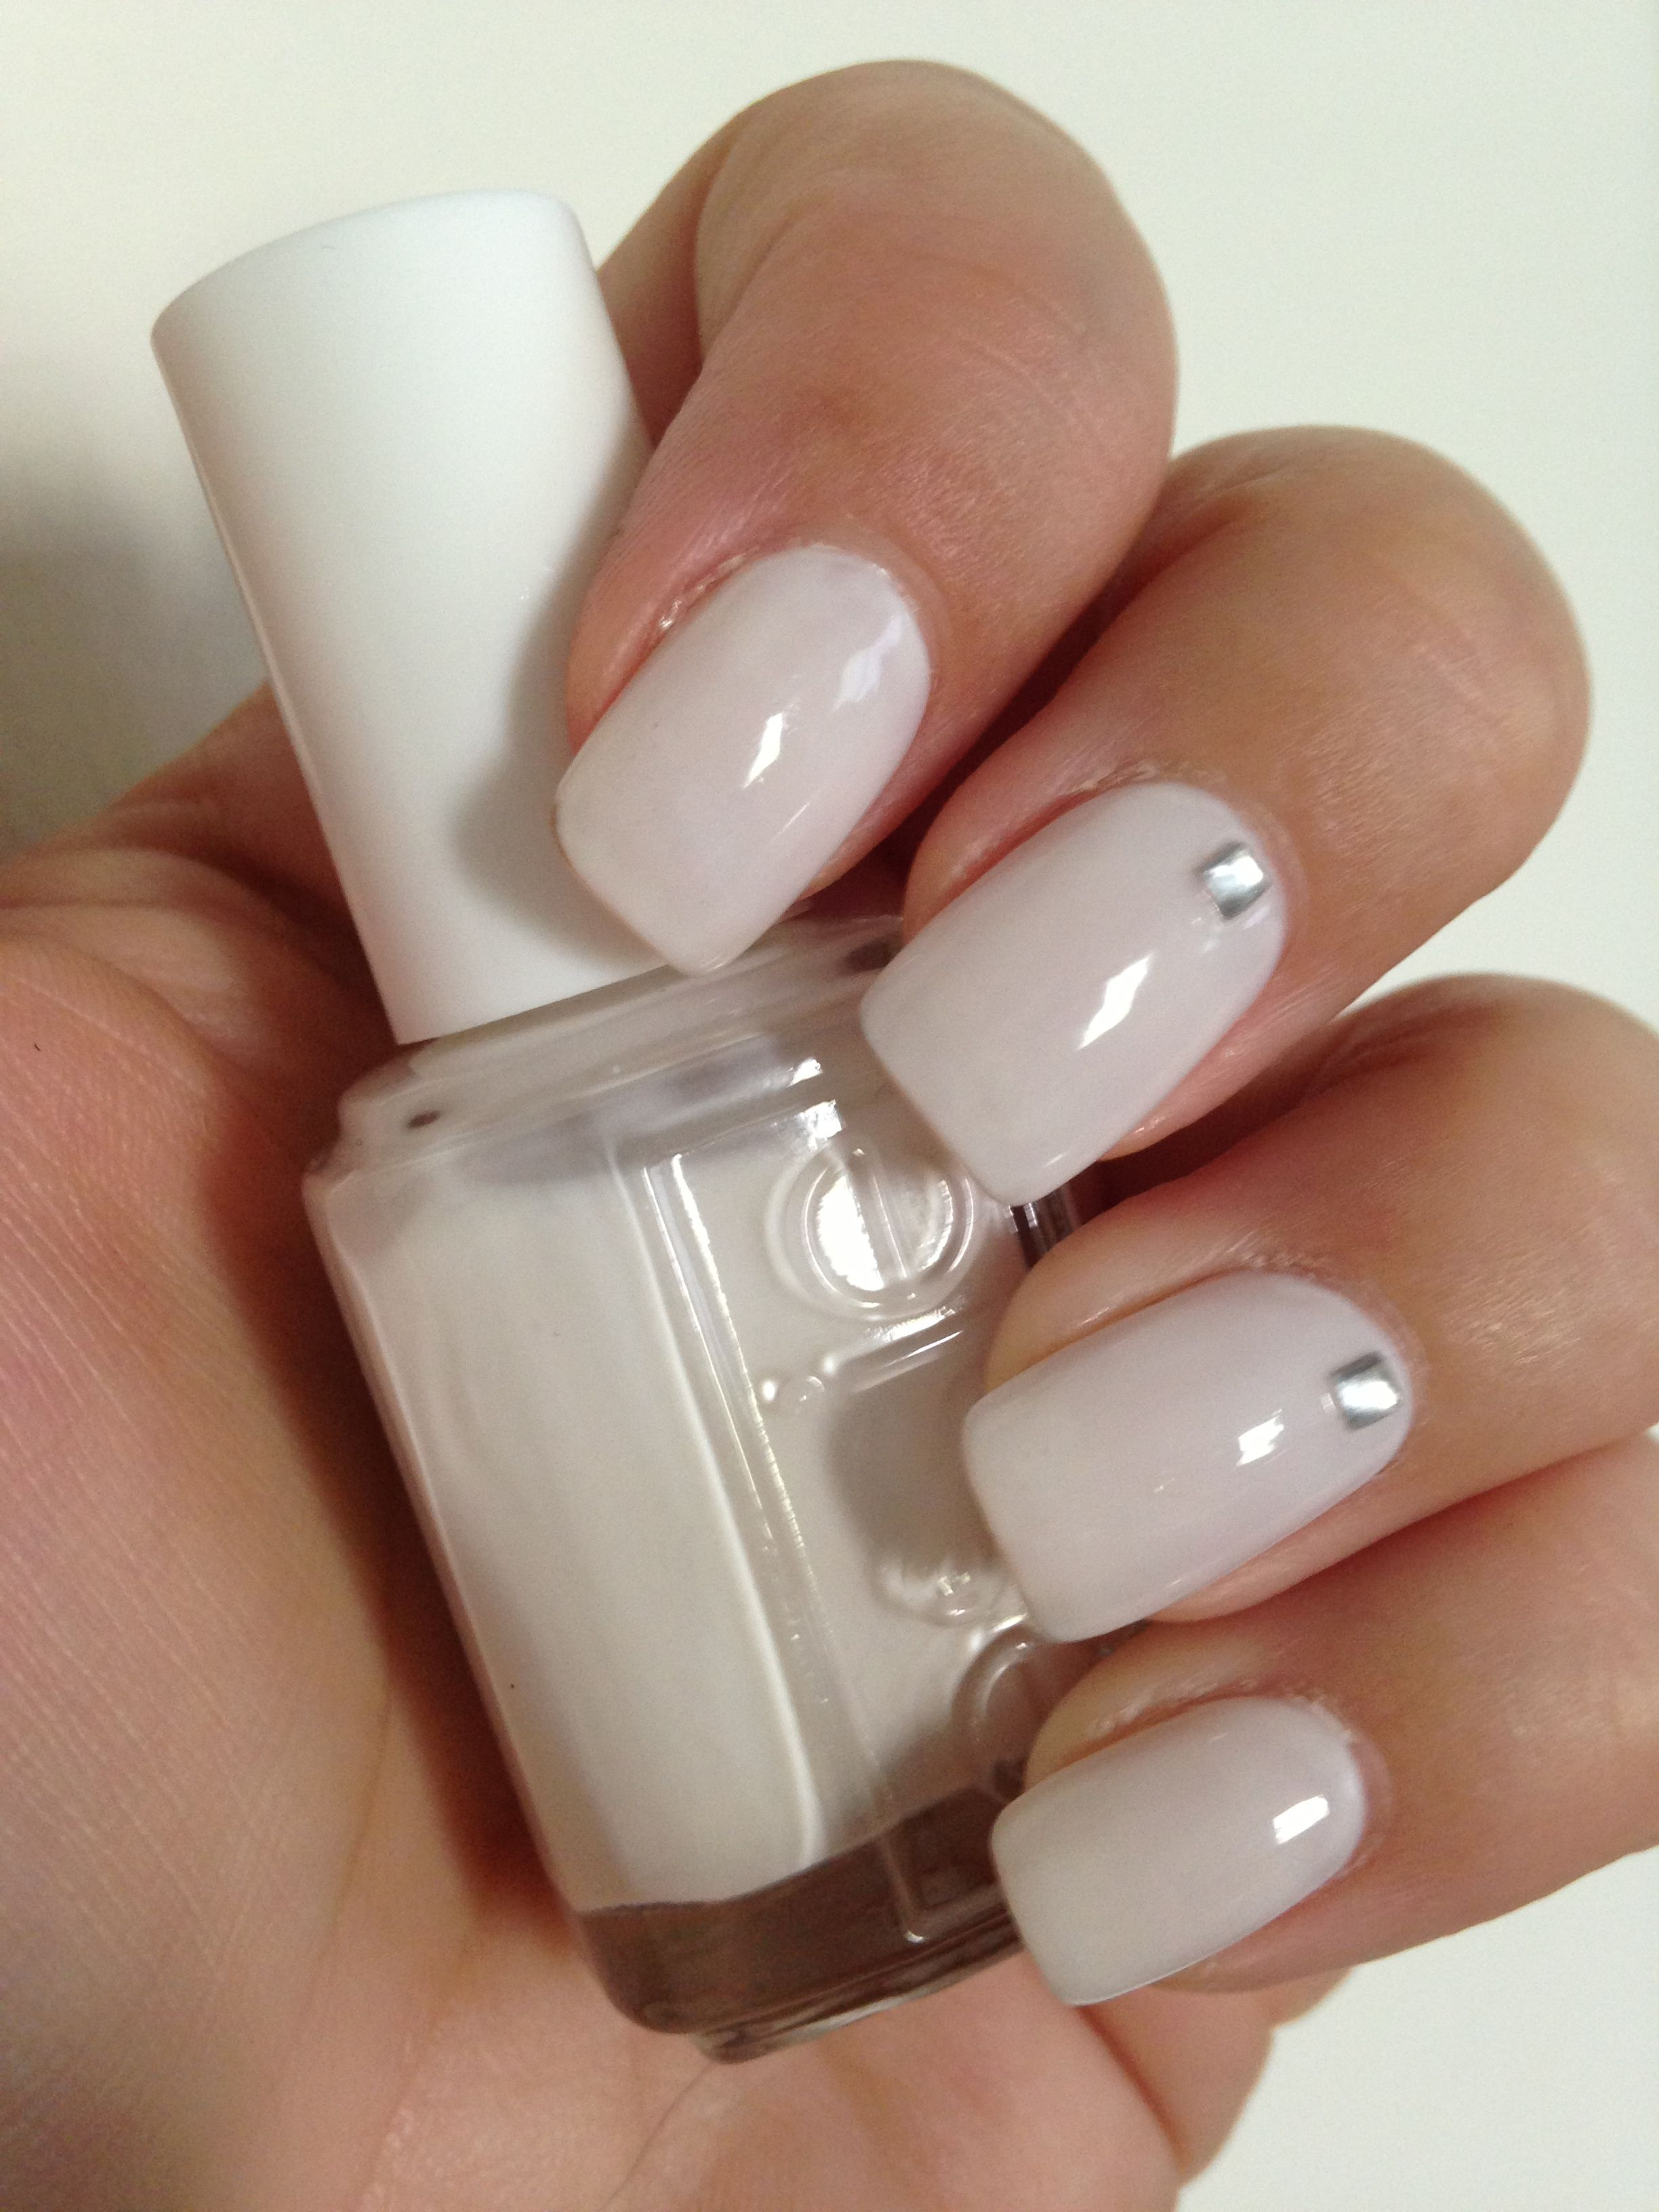 Perfect White Nail Polish Essie Marshmallow Soft Elegant With The Slightest Touch Of Pink Also Added A Little Sparkle Embellishment For A L Gelnagels Nagels